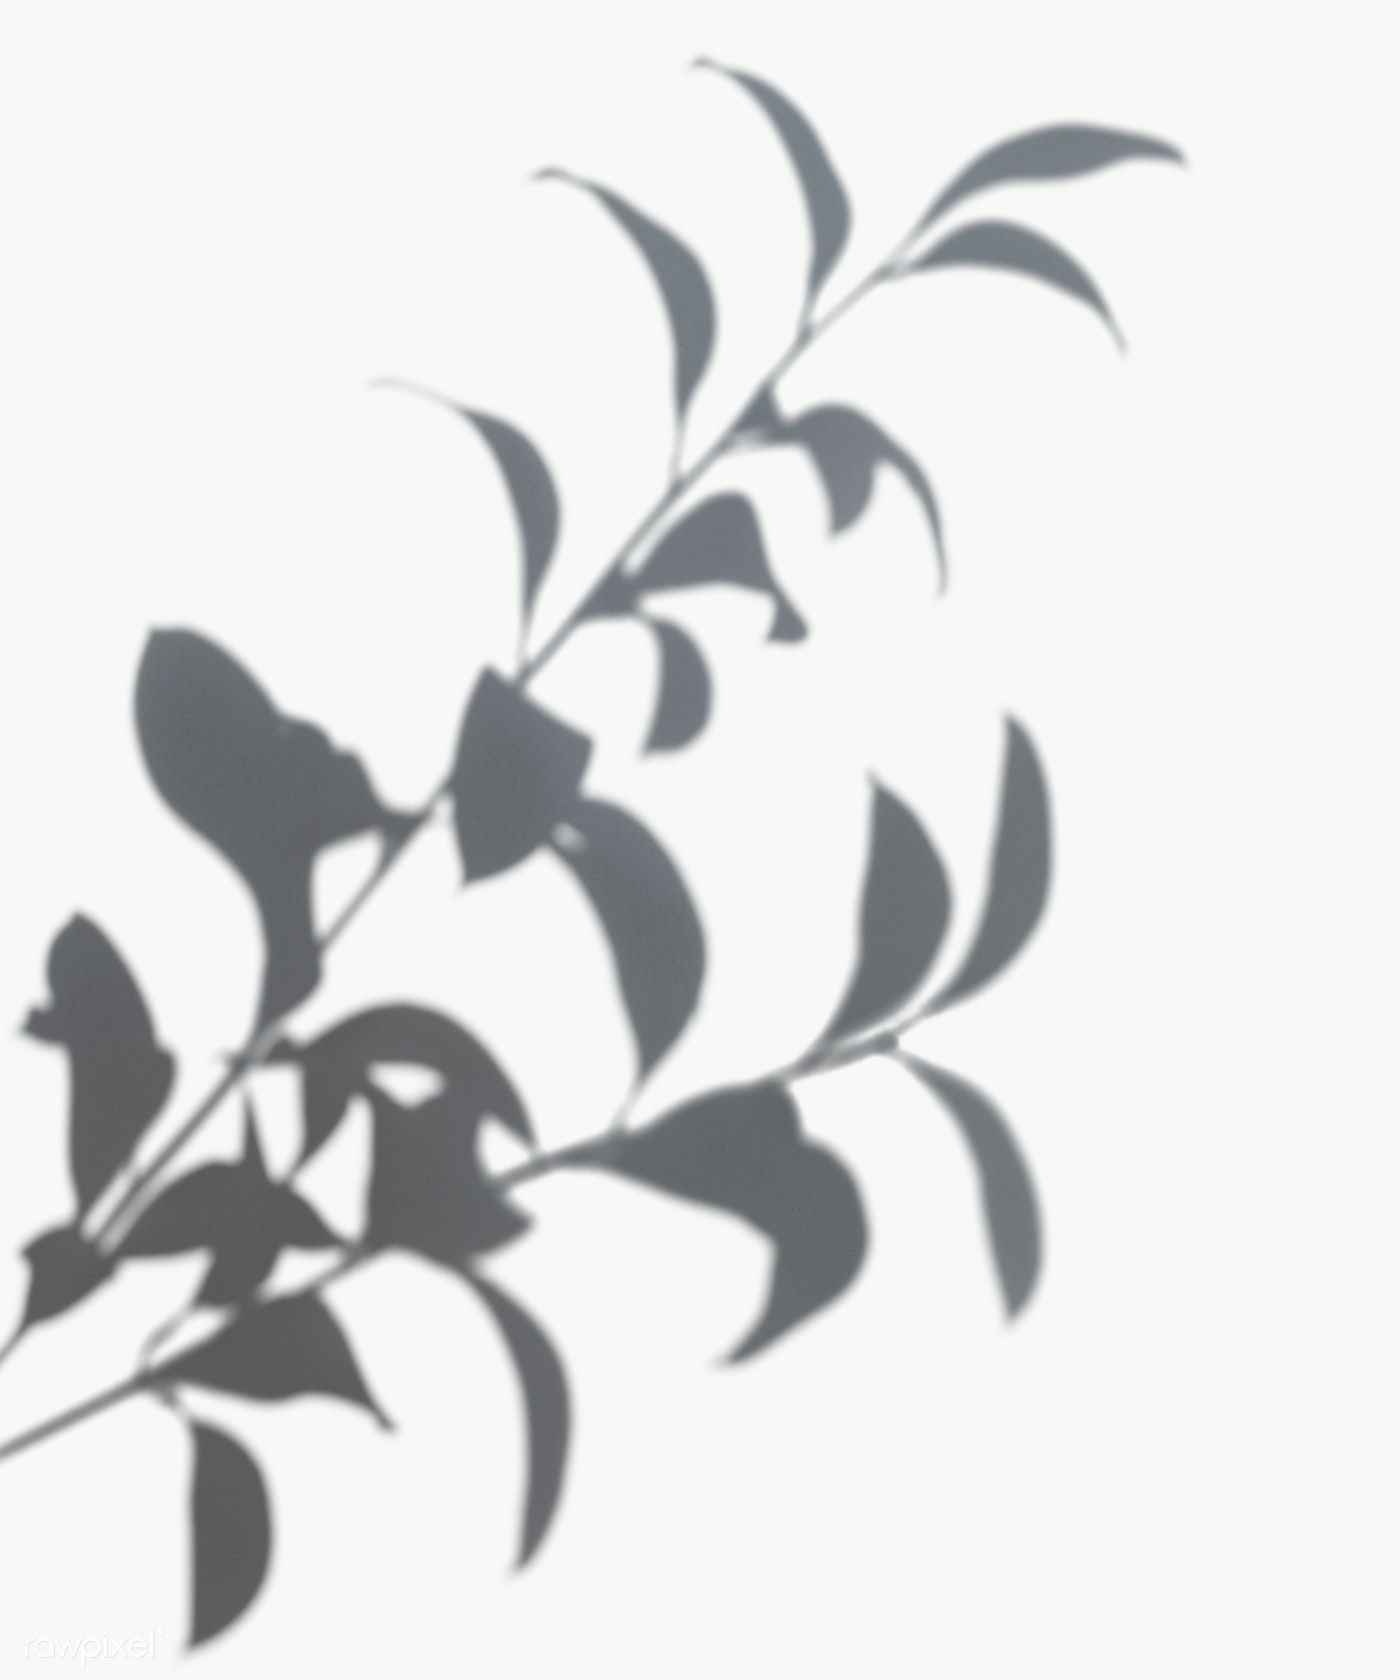 Shadow Of Leaves On A White Wall Free Image By Rawpixel Com Shadow Shadow Photography Shadow Plants